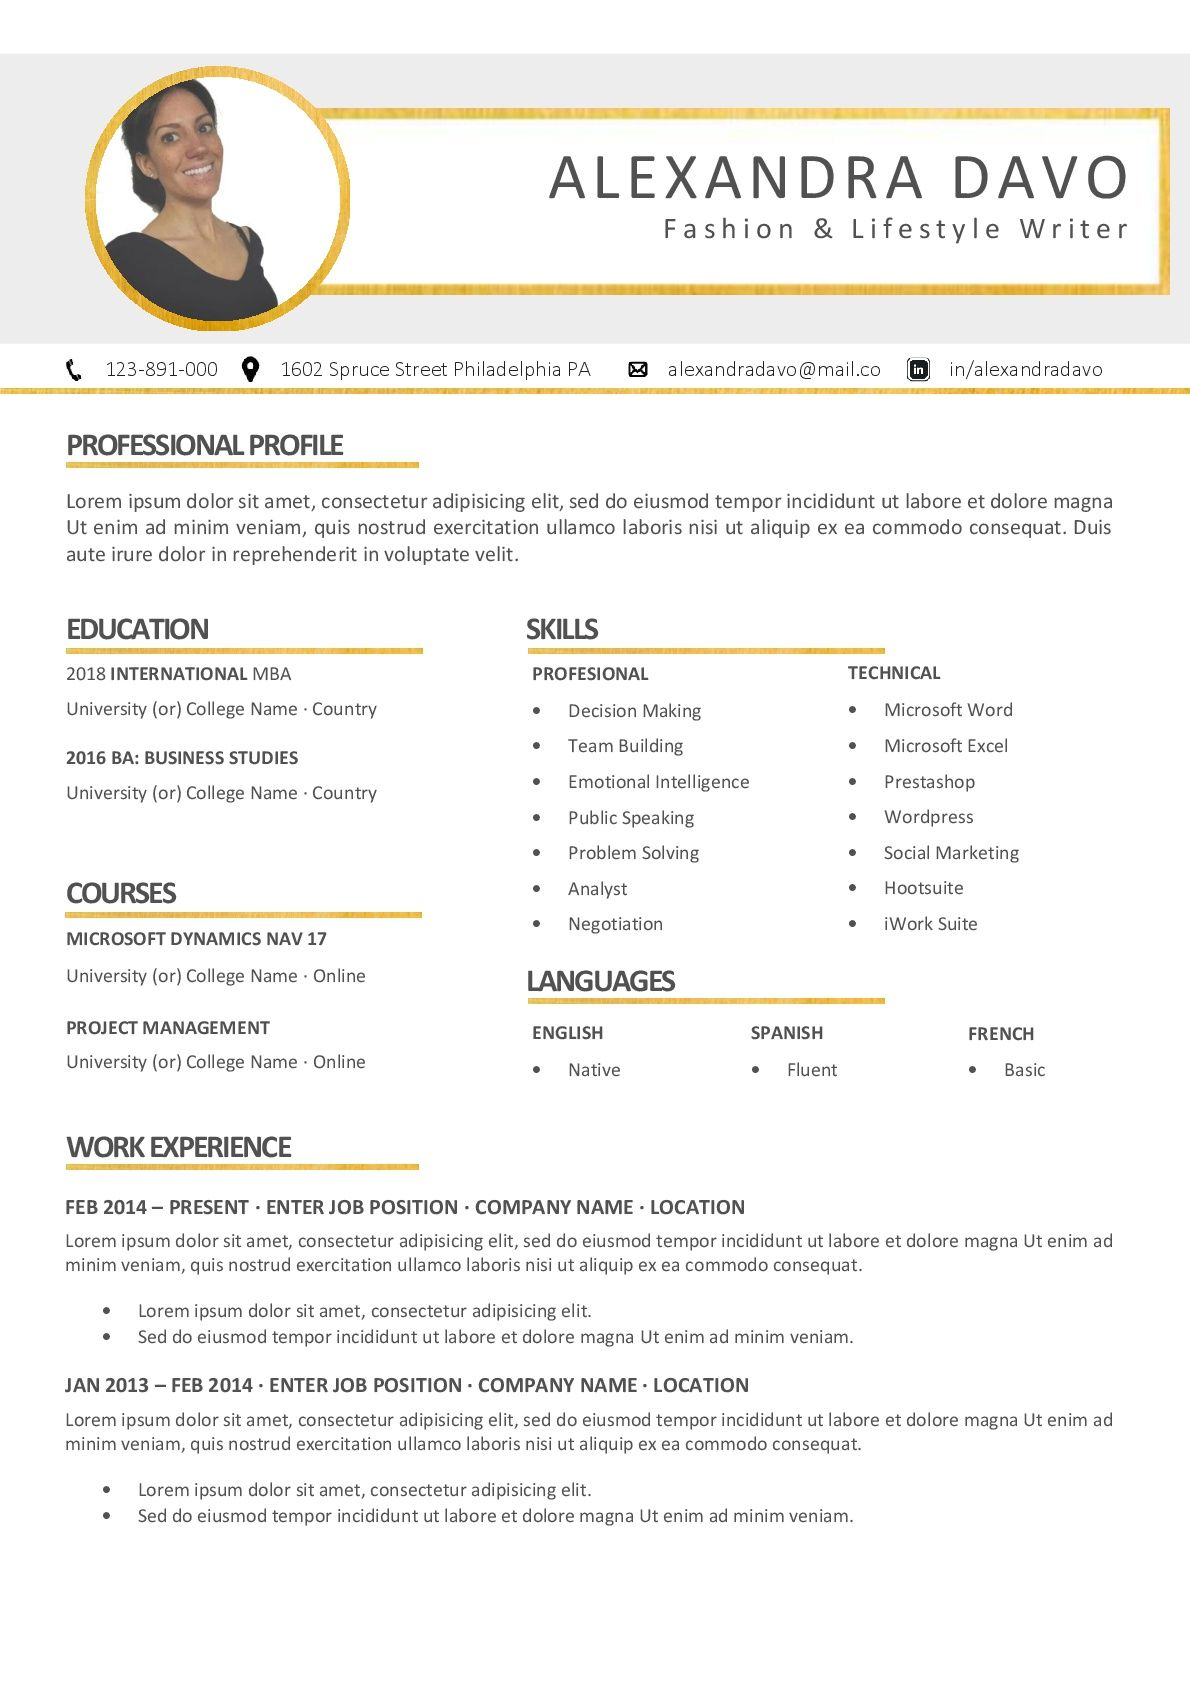 Word Resume & Cover Letter Template #resume #cv #CVTemplate ...